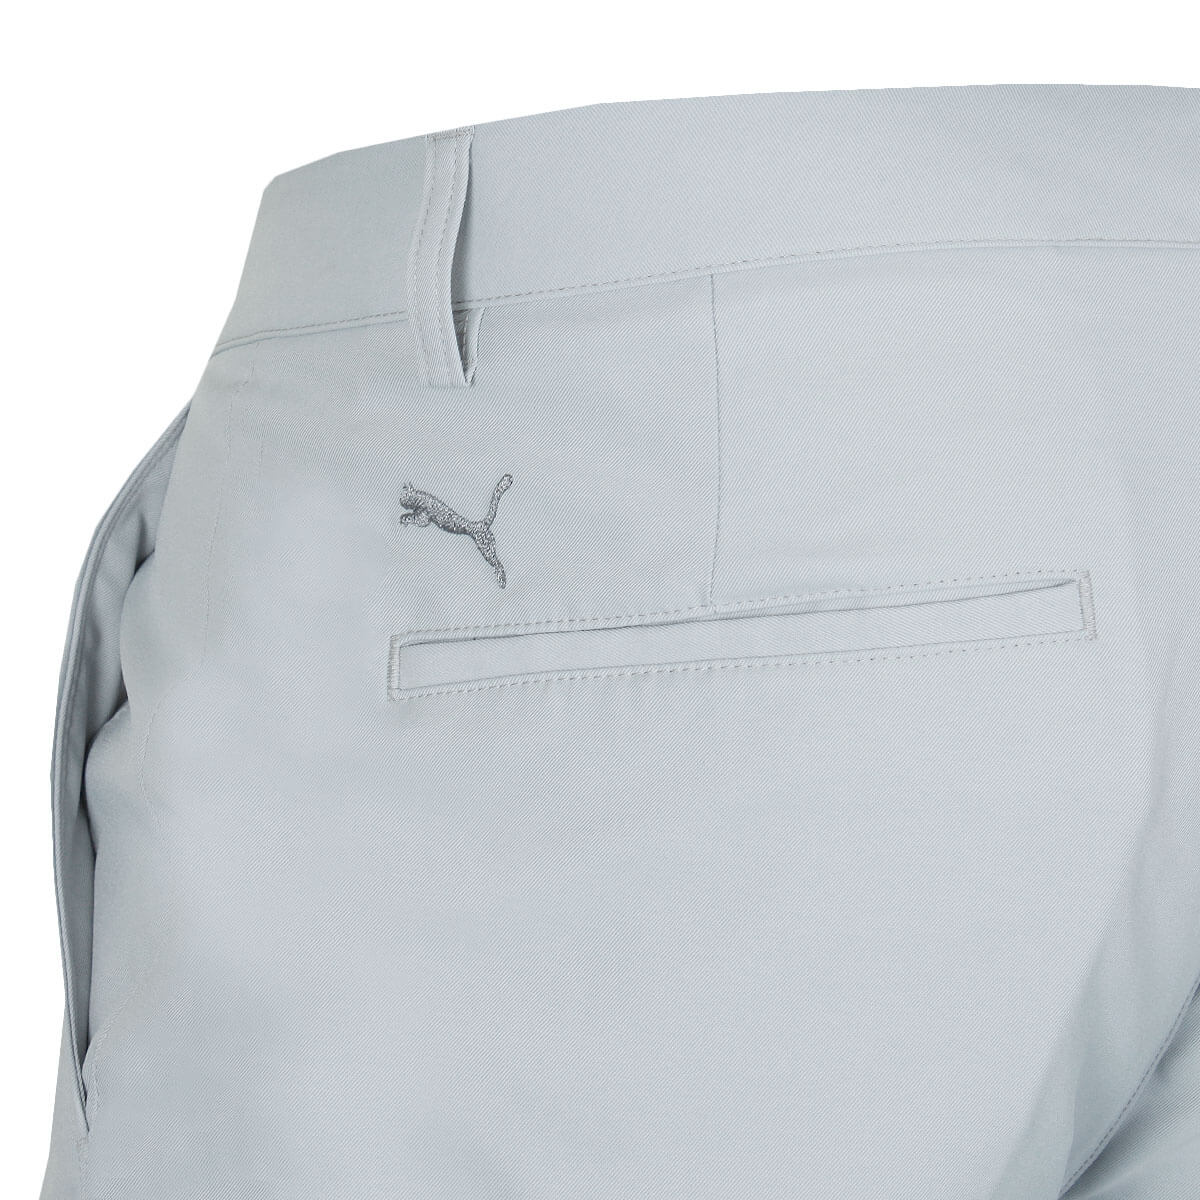 Puma-Golf-Mens-Stretch-Pounce-Golf-Stretch-Wicking-Trousers-45-OFF-RRP thumbnail 10